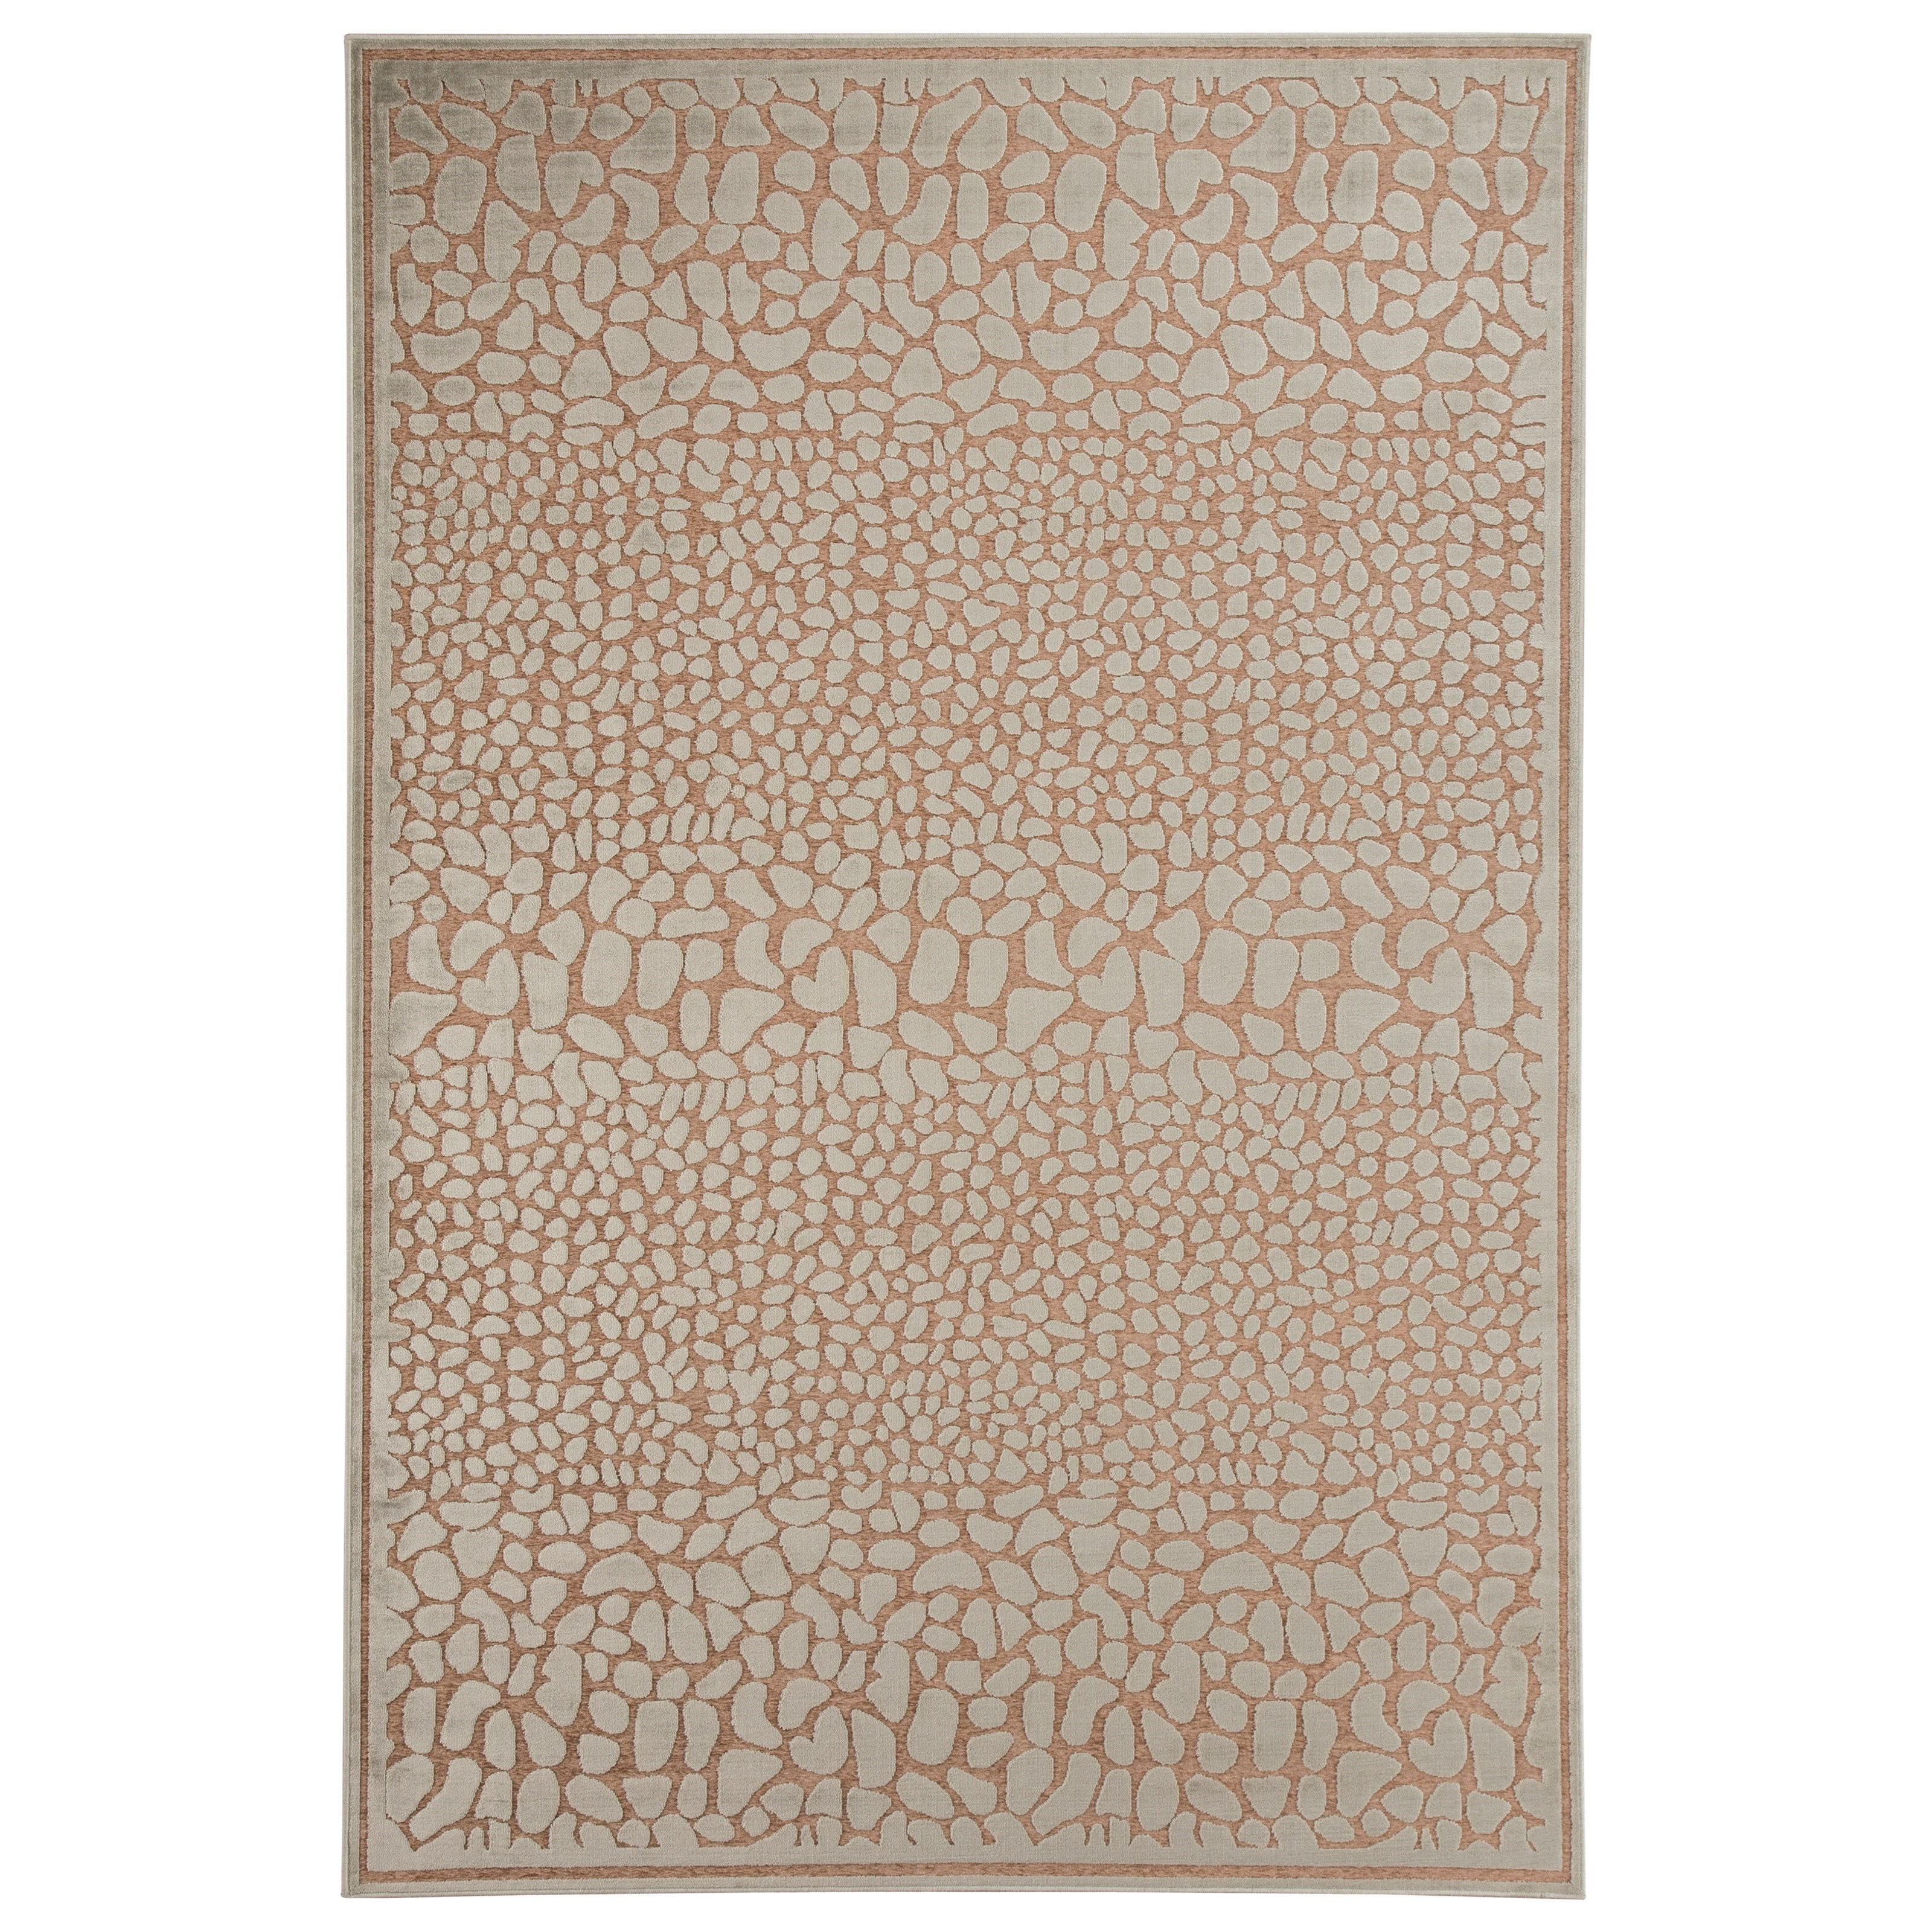 Signature Design by Ashley Contemporary Area Rugs Dallyce Ivory Medium Rug - Item Number: R401932